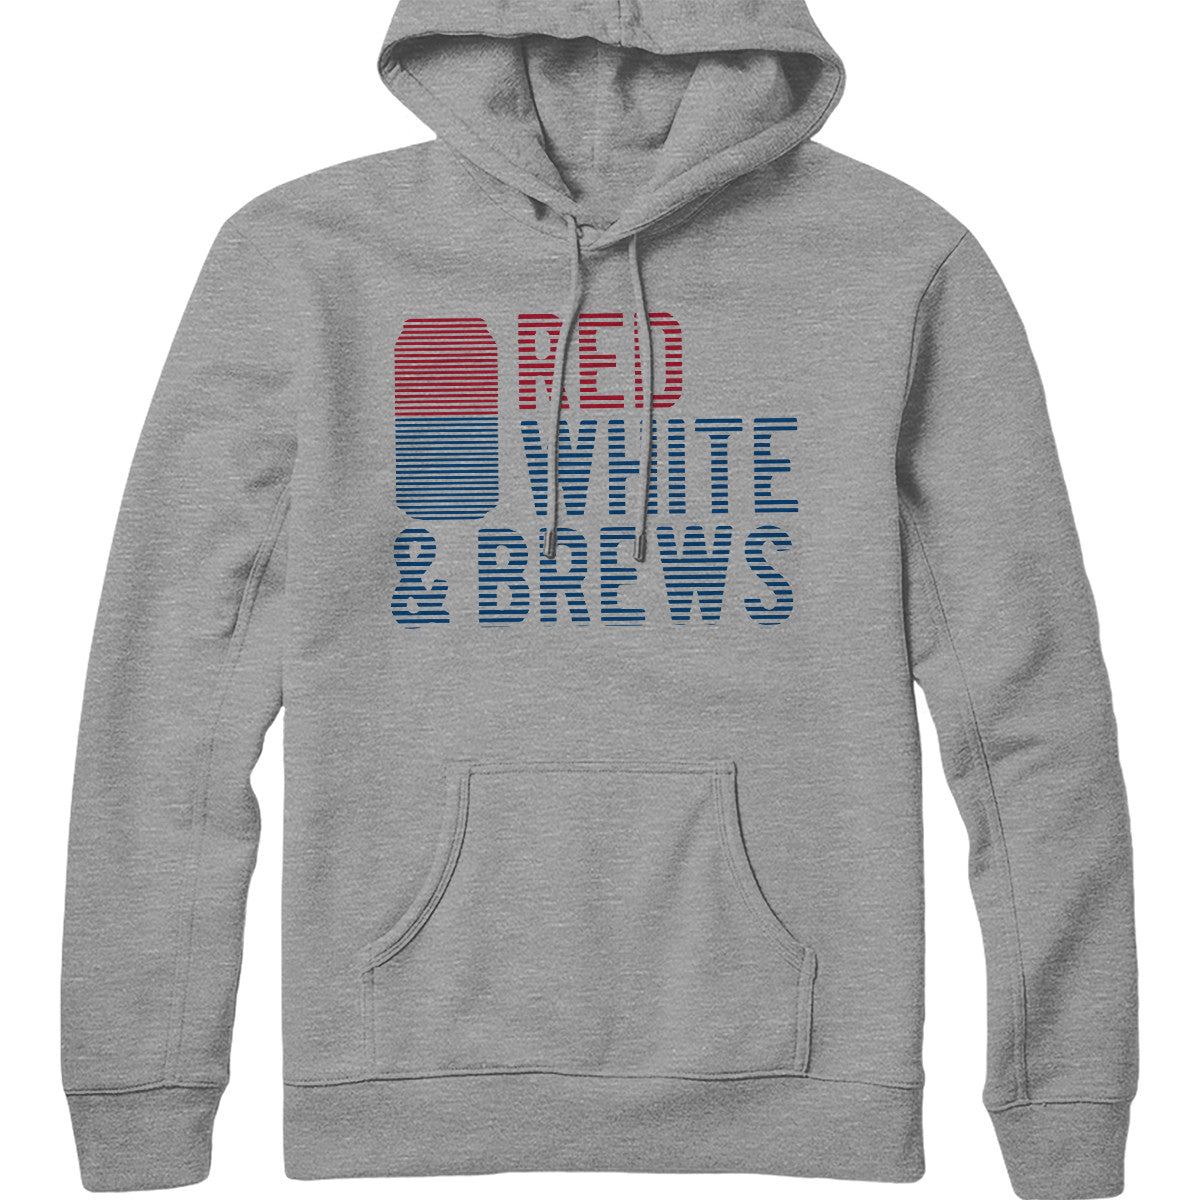 Red White and Brews Hoodie